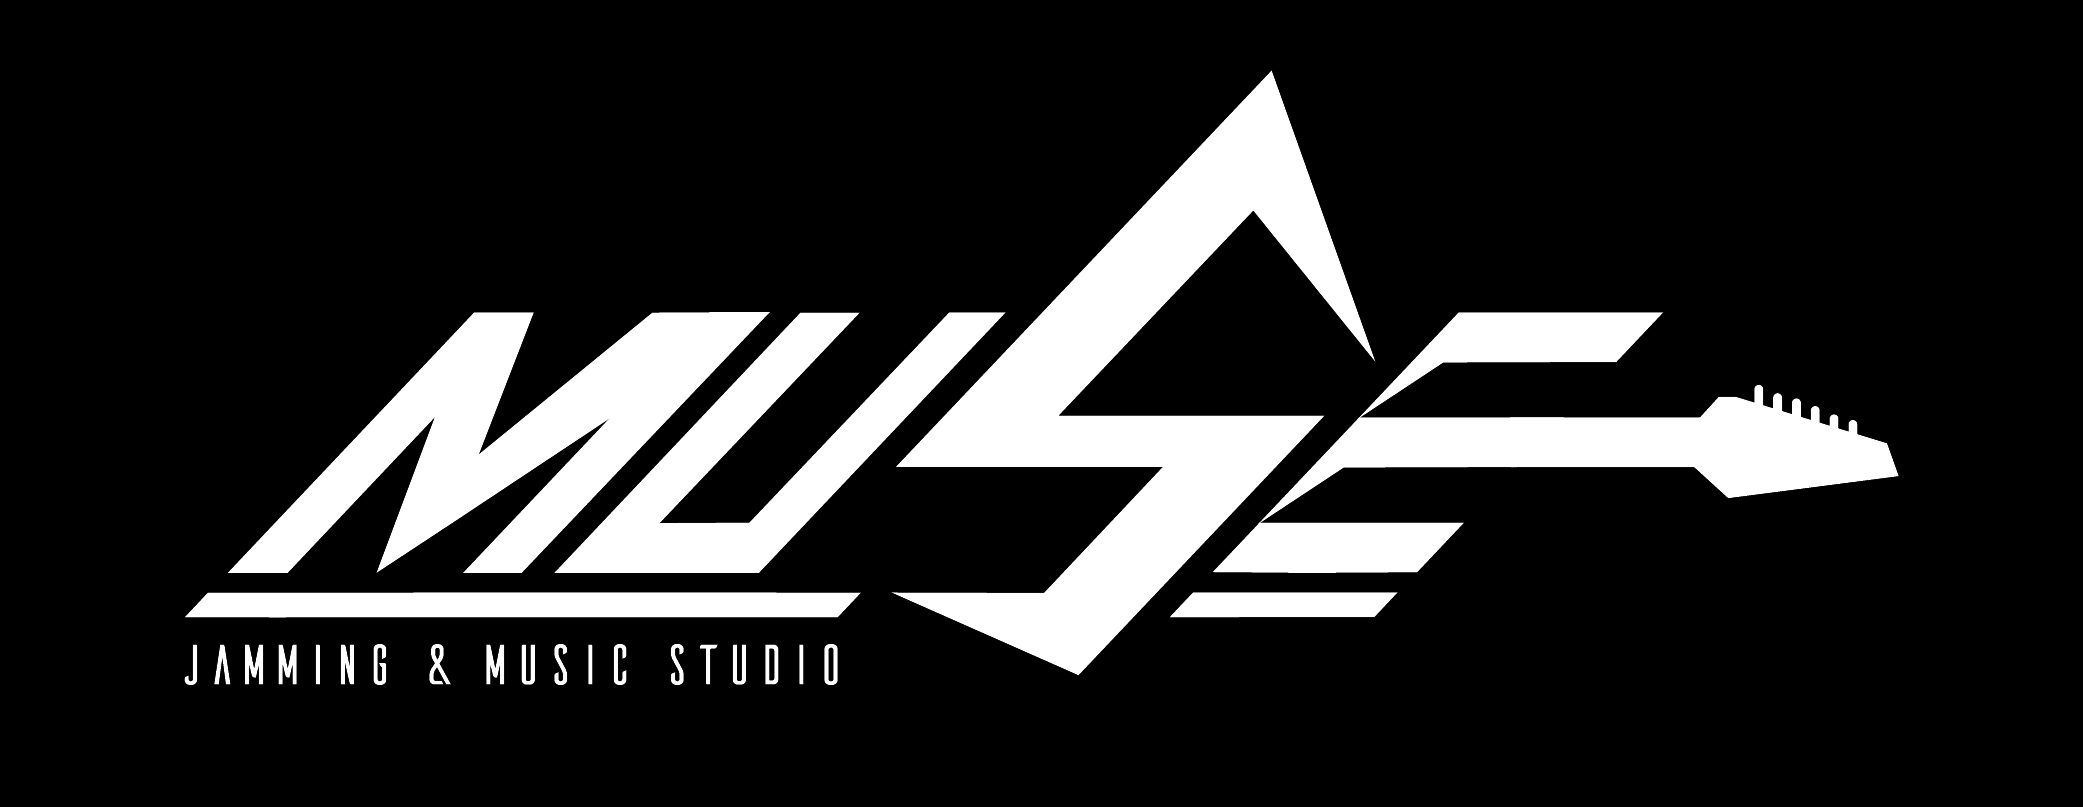 MUSE JAMMING & MUSIC STUDIO